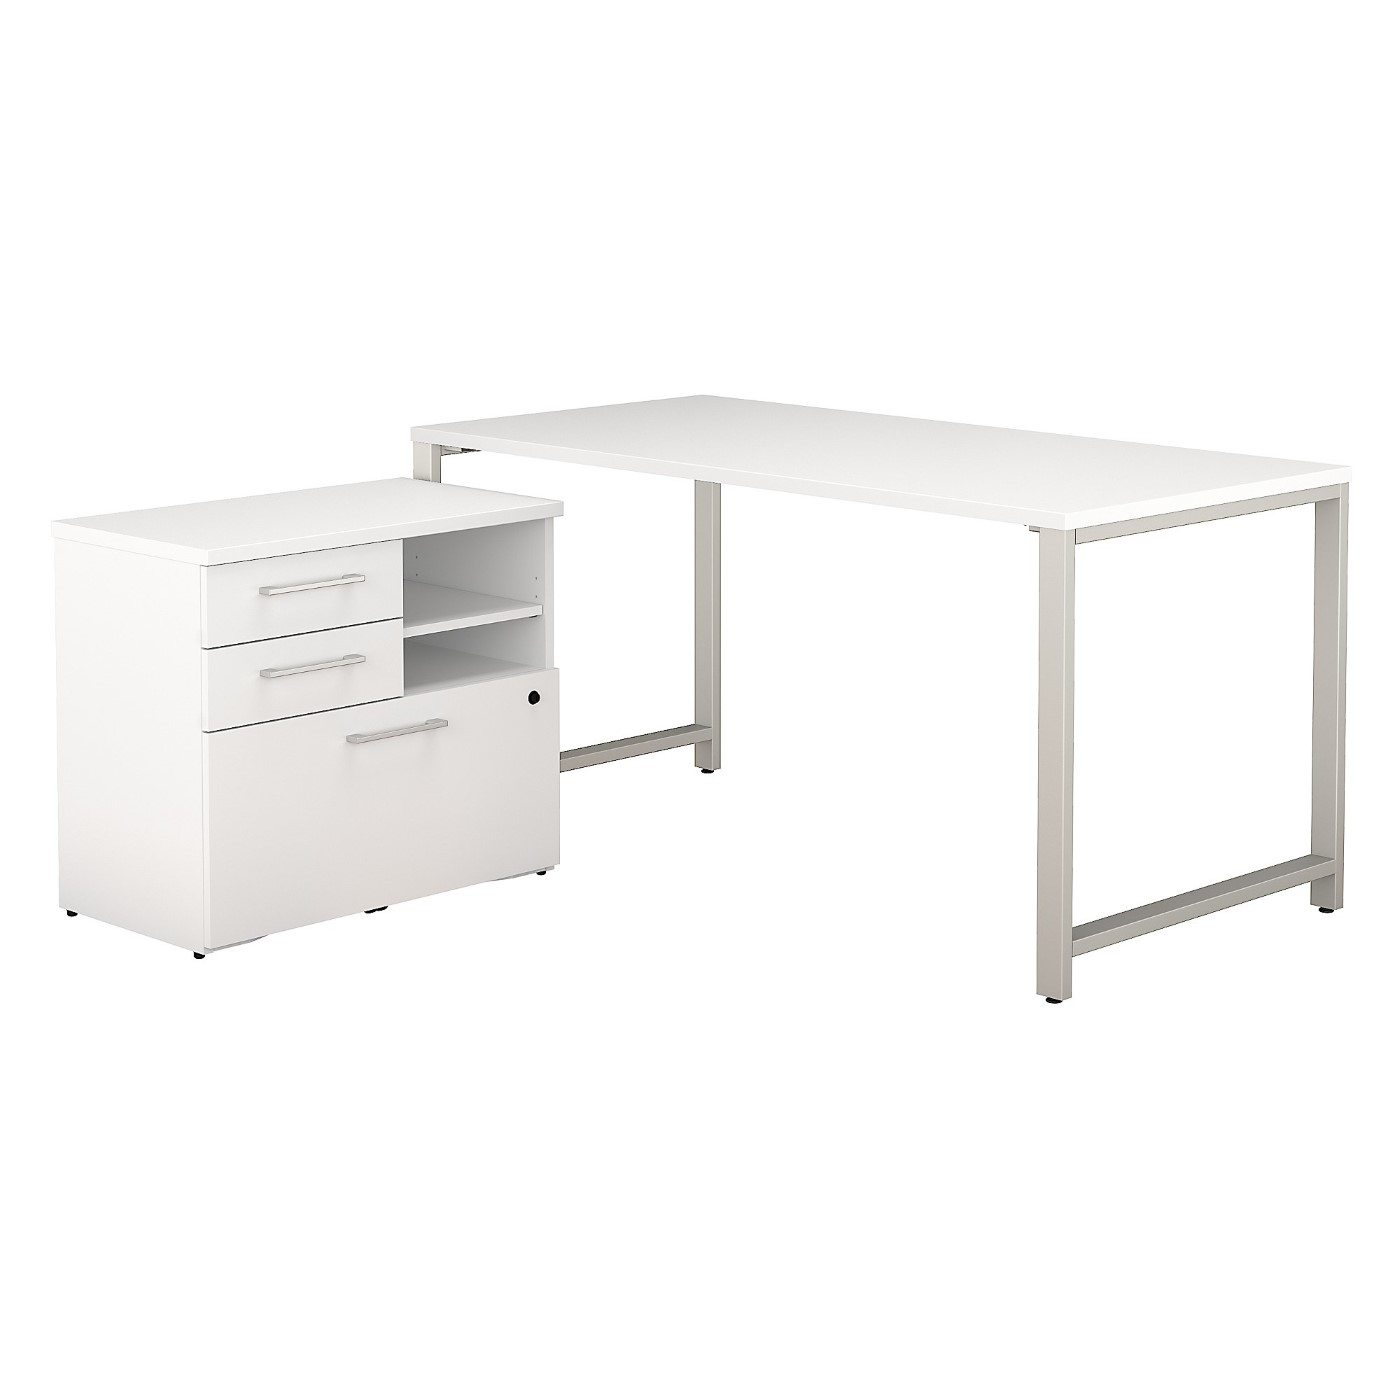 BUSH BUSINESS FURNITURE 400 SERIES 60W X 30D TABLE DESK WITH STORAGE. FREE SHIPPING